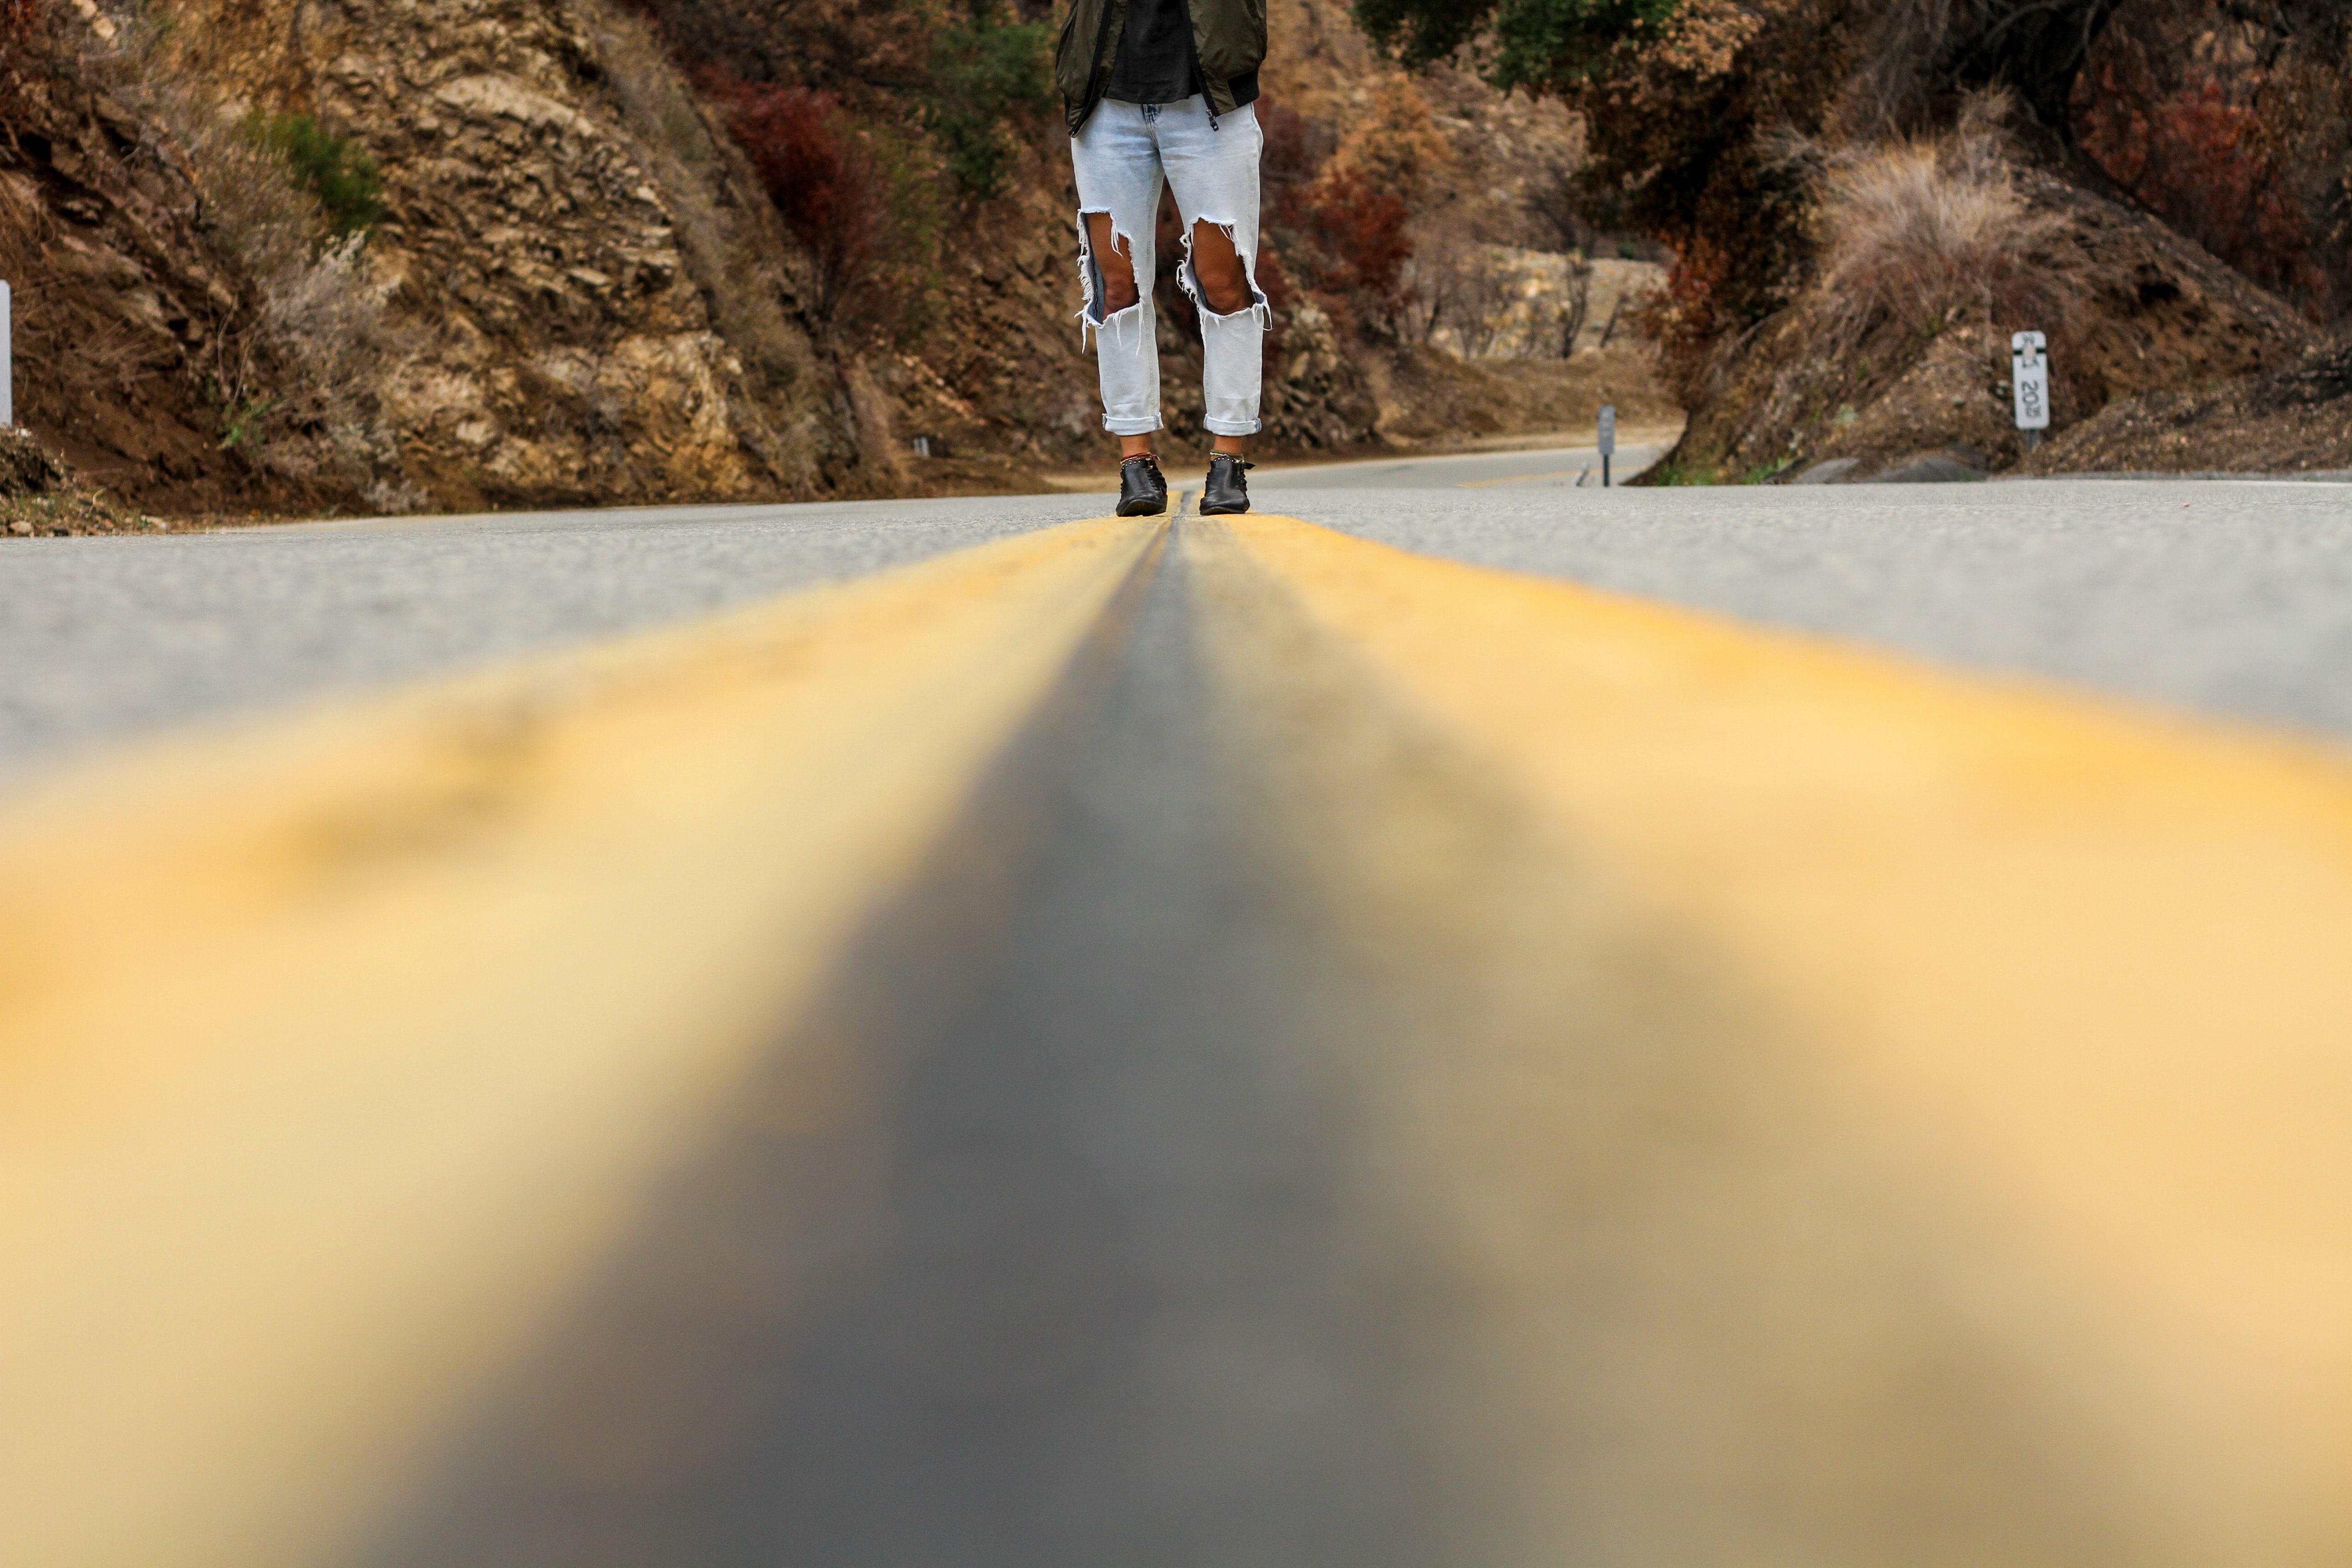 A person in ripped jeans standing in the middle of an empty road through a canyon